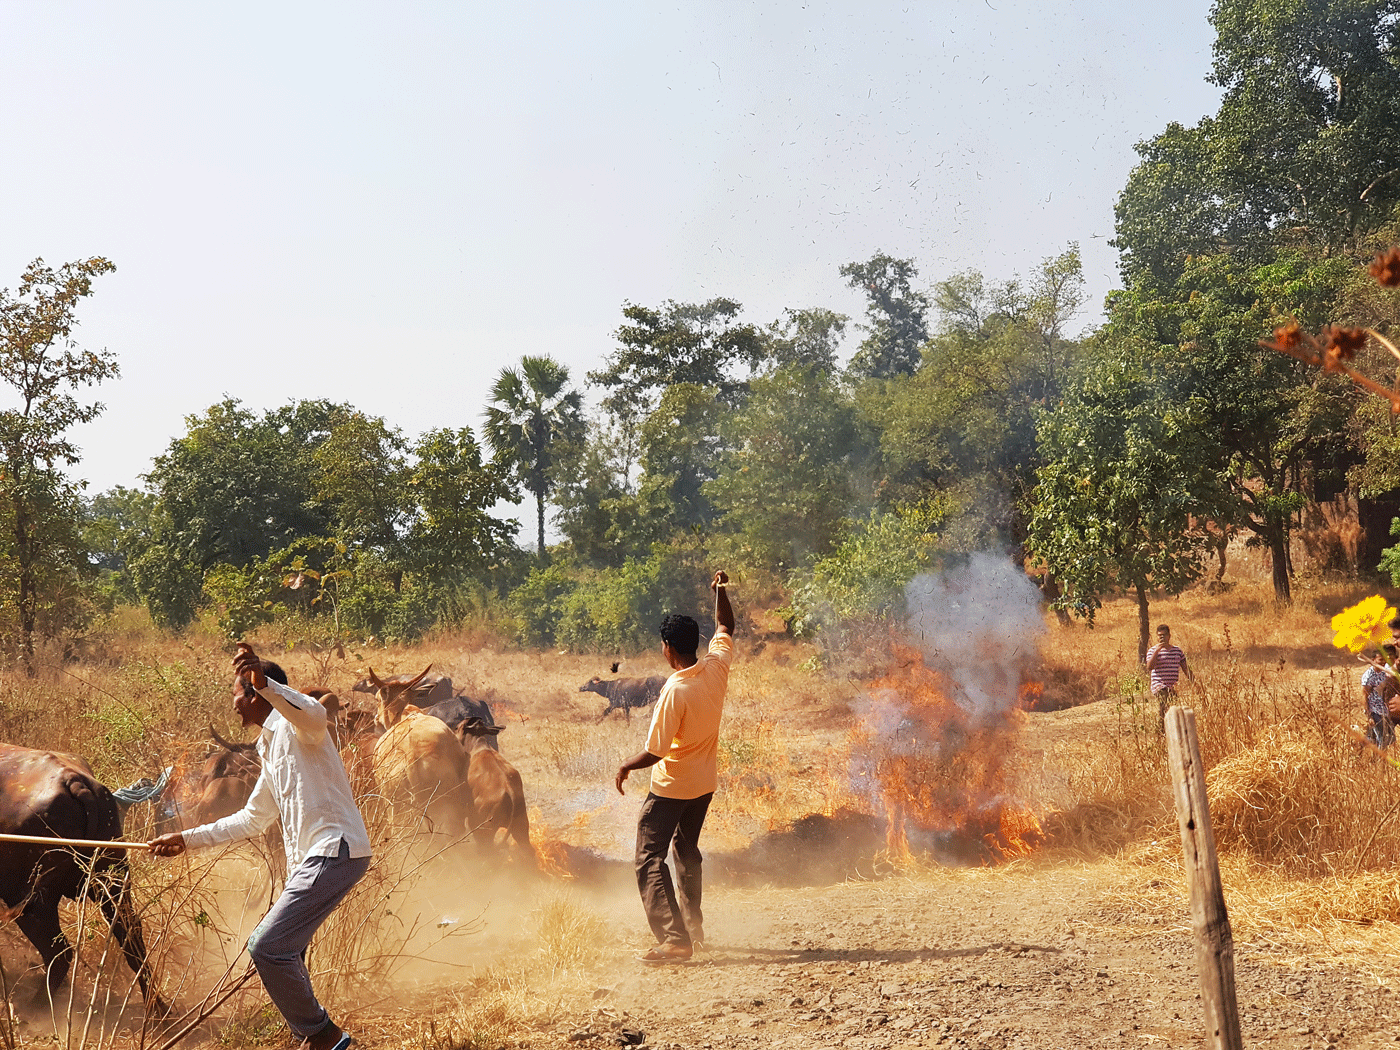 During Diwali, the Warlis perform a fire ritual where all livestock in the hamlet are rapidly led to step through a paddy-straw fire lit by the community